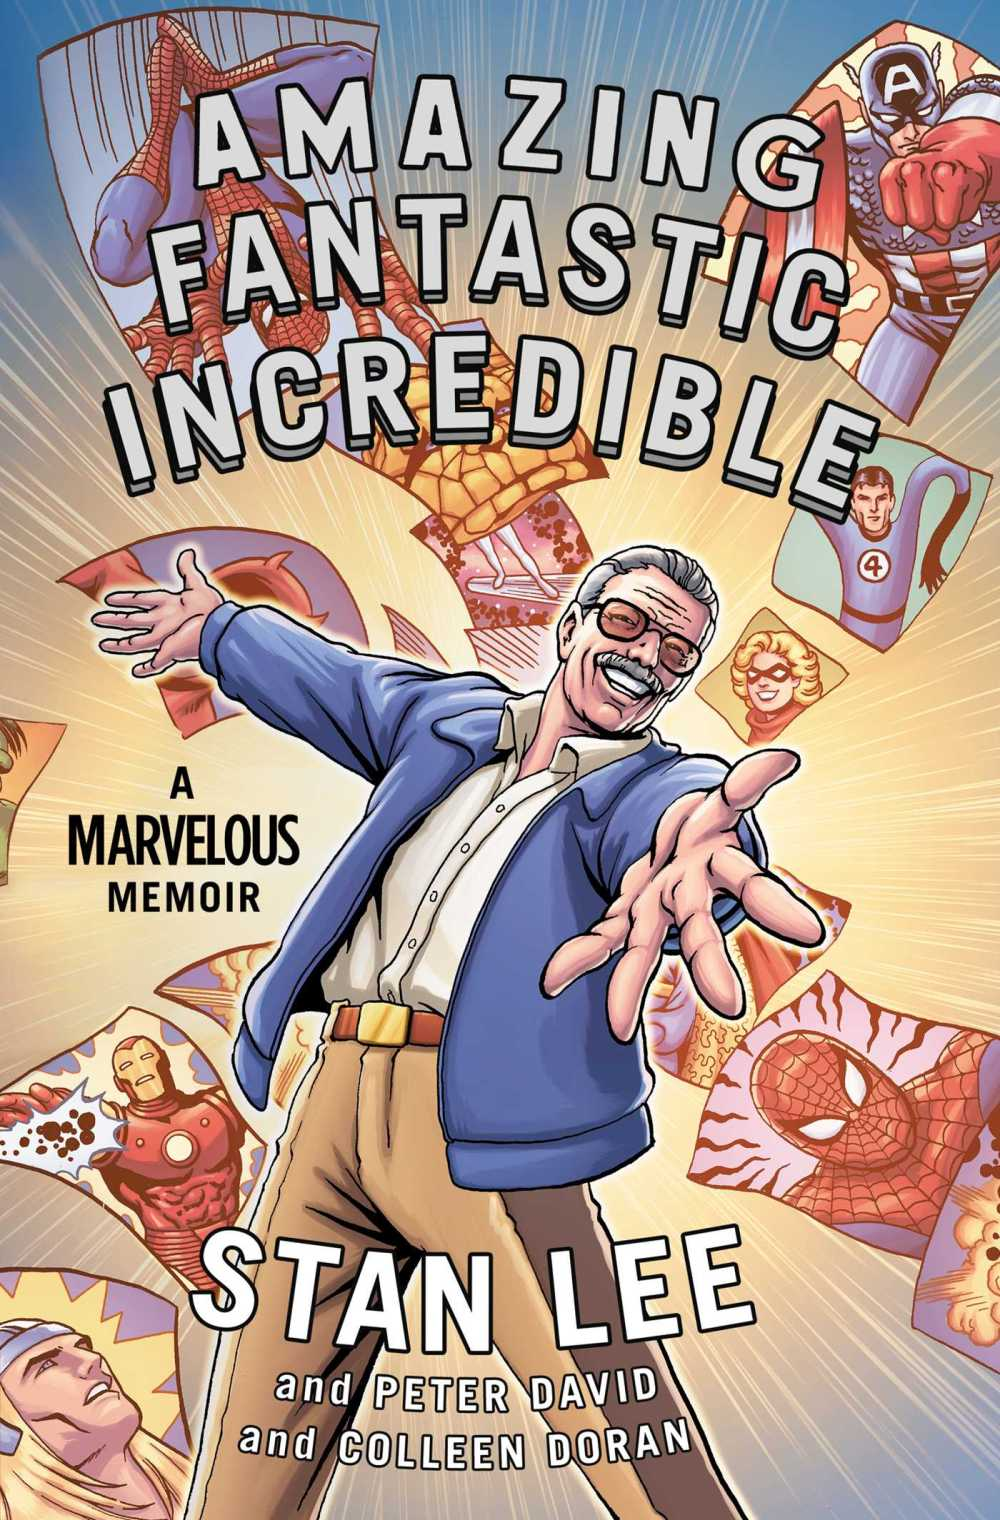 Stan Lee Bio CineParrafos